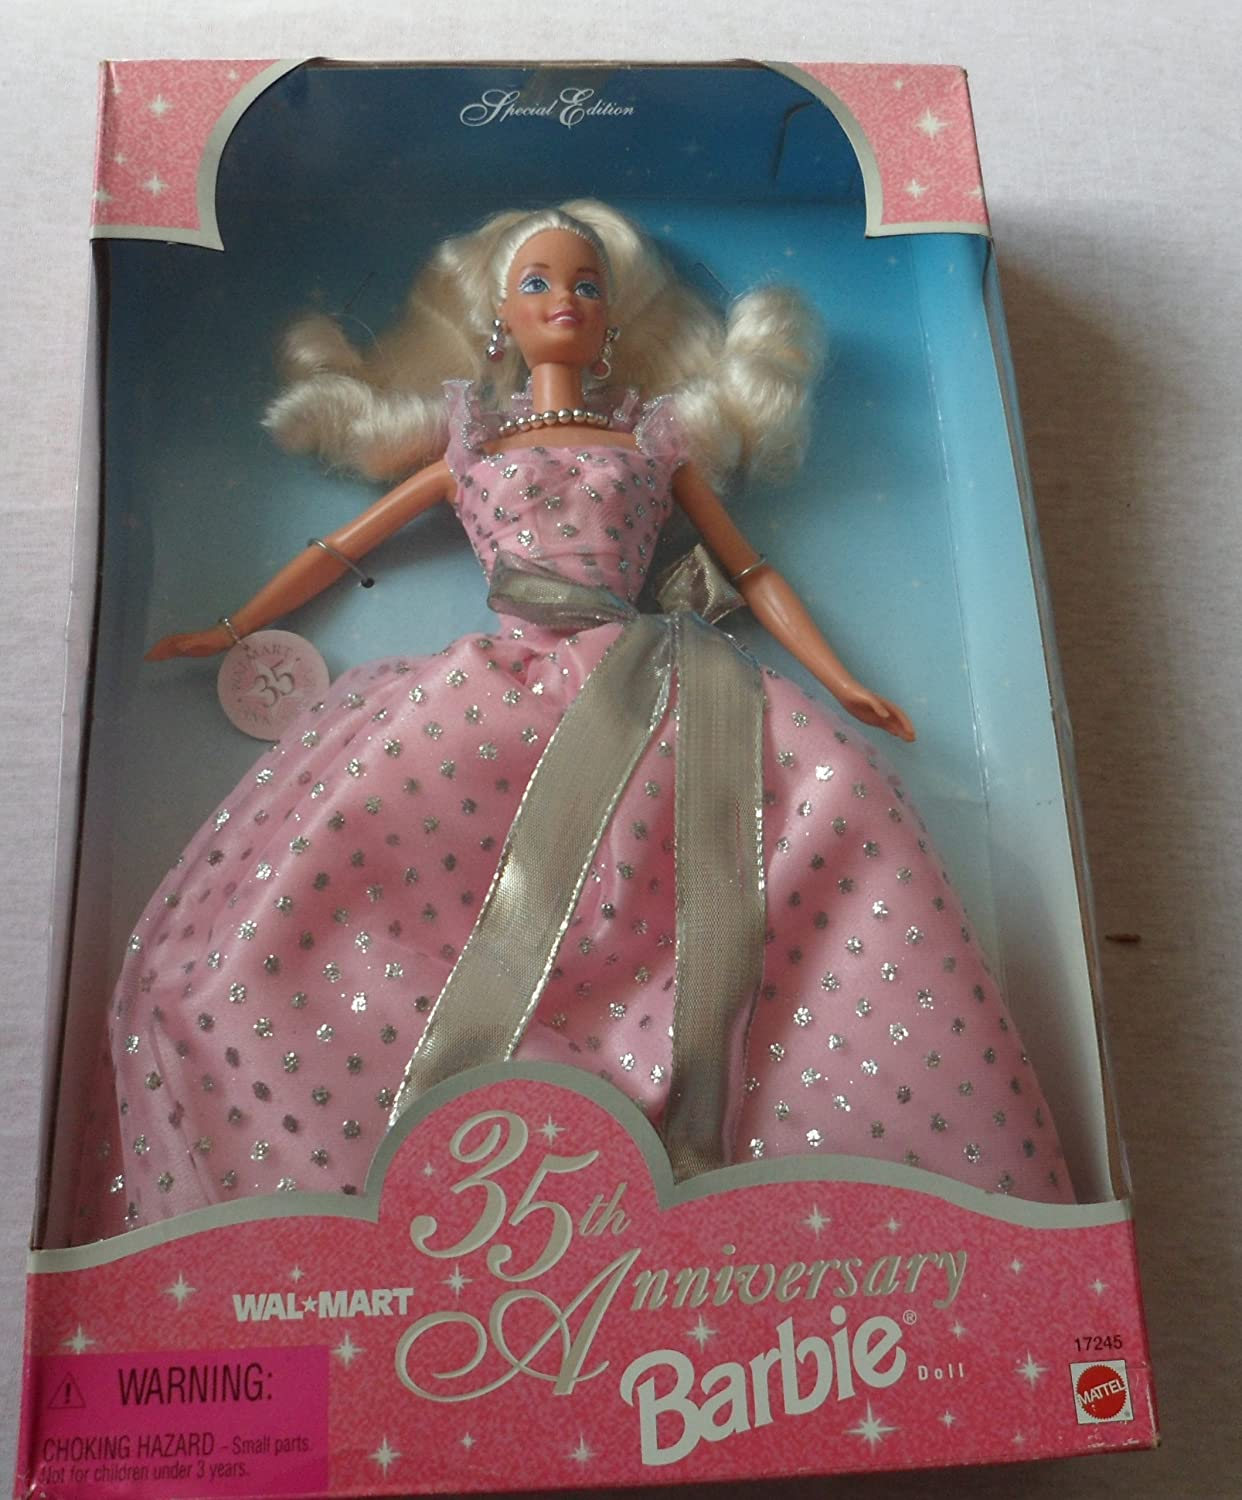 Barbie Special Edition WalMart 35th Anniversary Barbie Doll By Mattel in 1997  The box is in poor condition